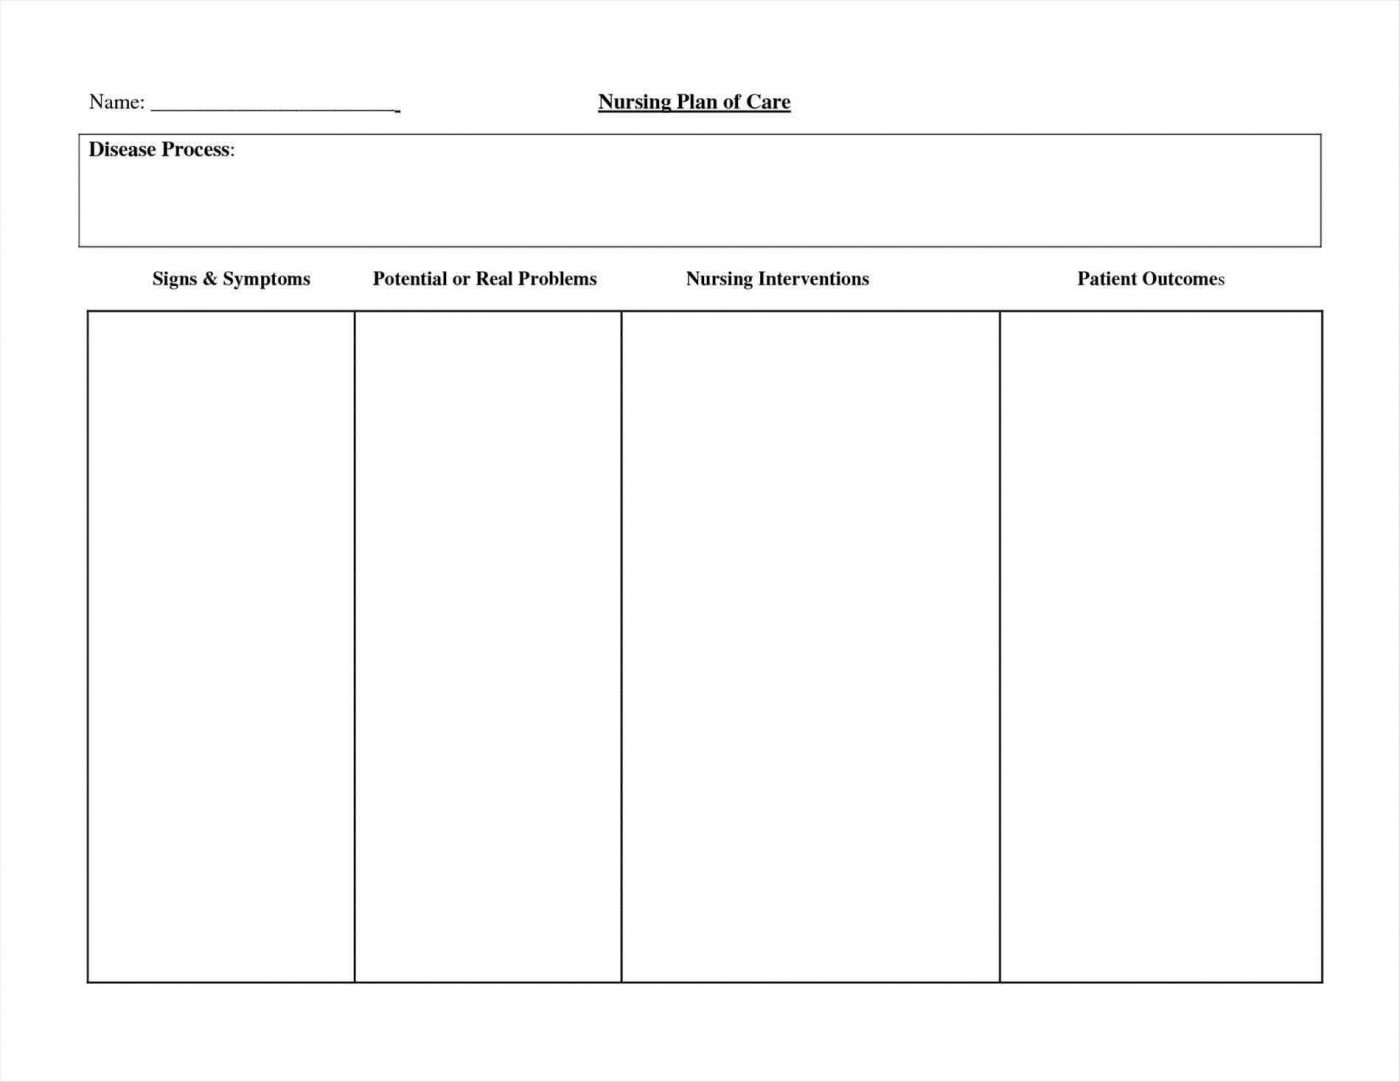 002 Impressive Nursing Care Plan Template Image  Free Pdf Download1400